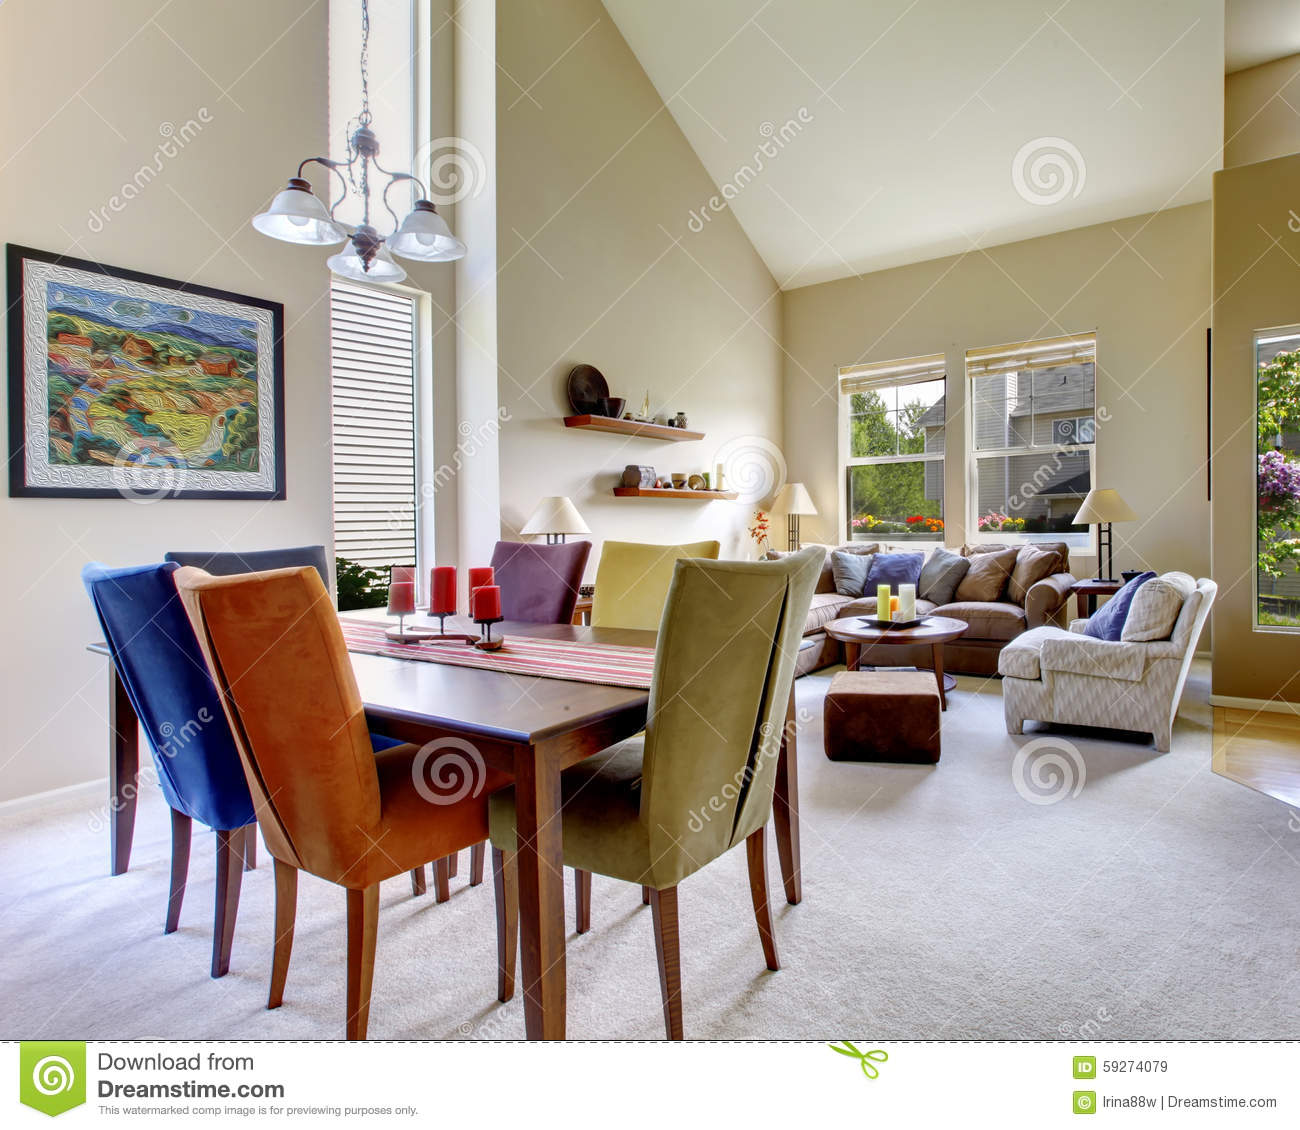 Images libres de droits large beige bright living room for Table salle a manger avec chaises